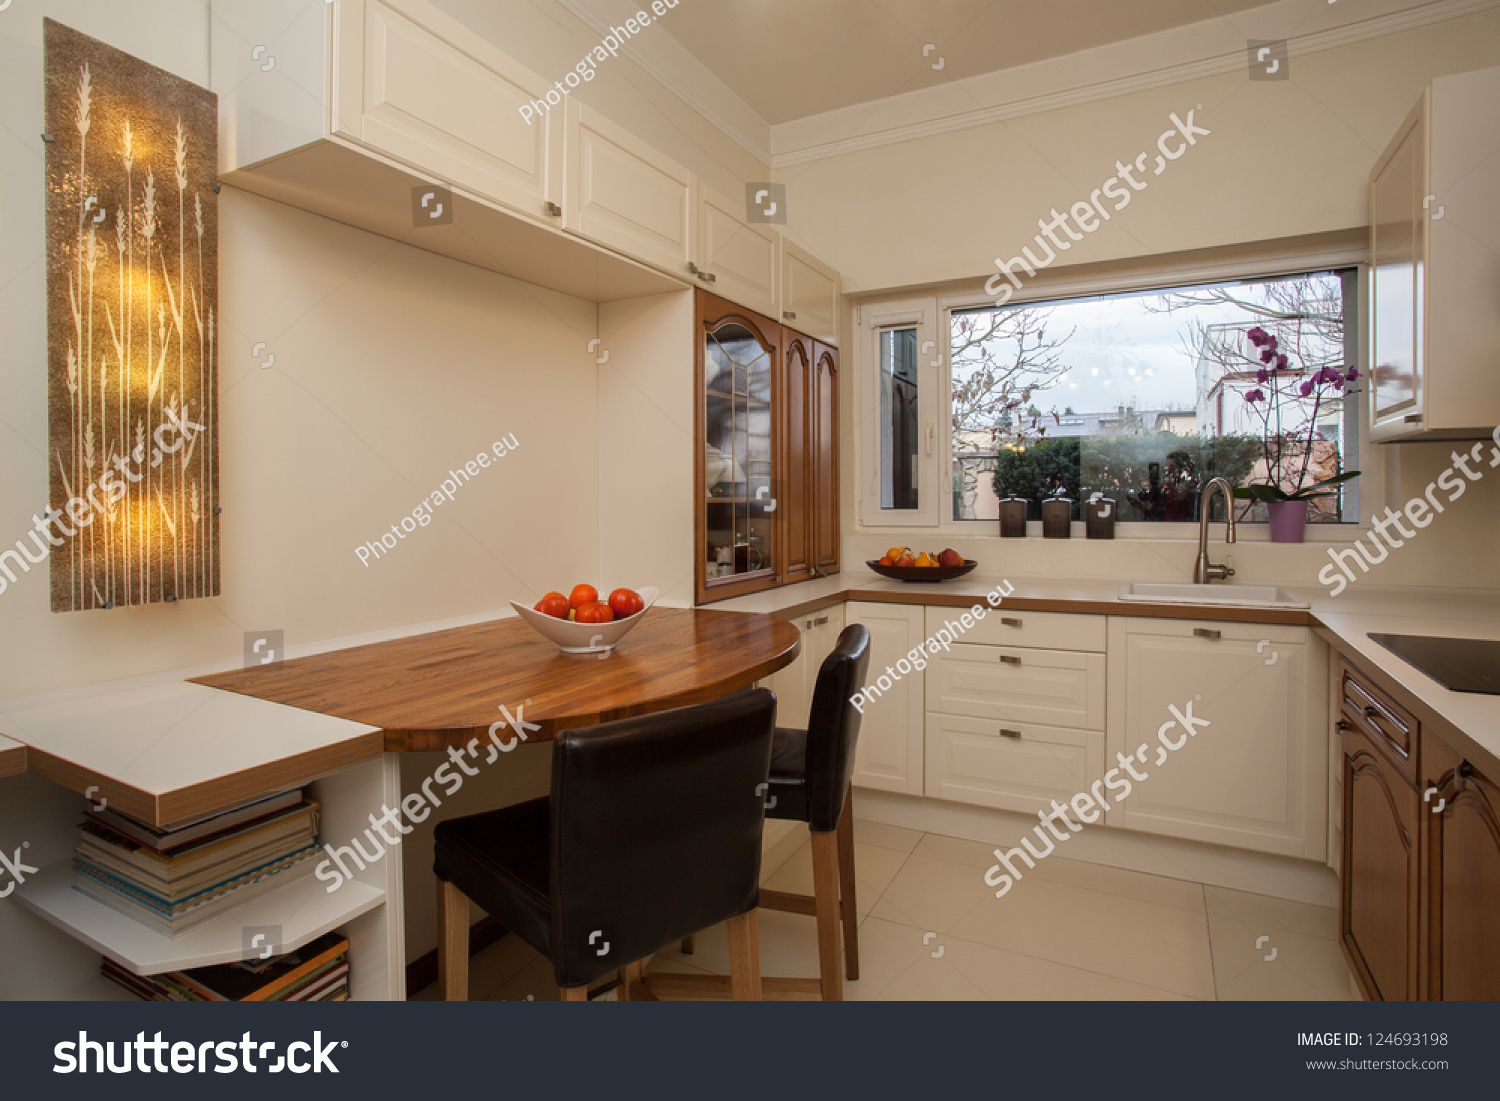 Cloudy Home Bright Interior Practical Kitchen Stock Photo